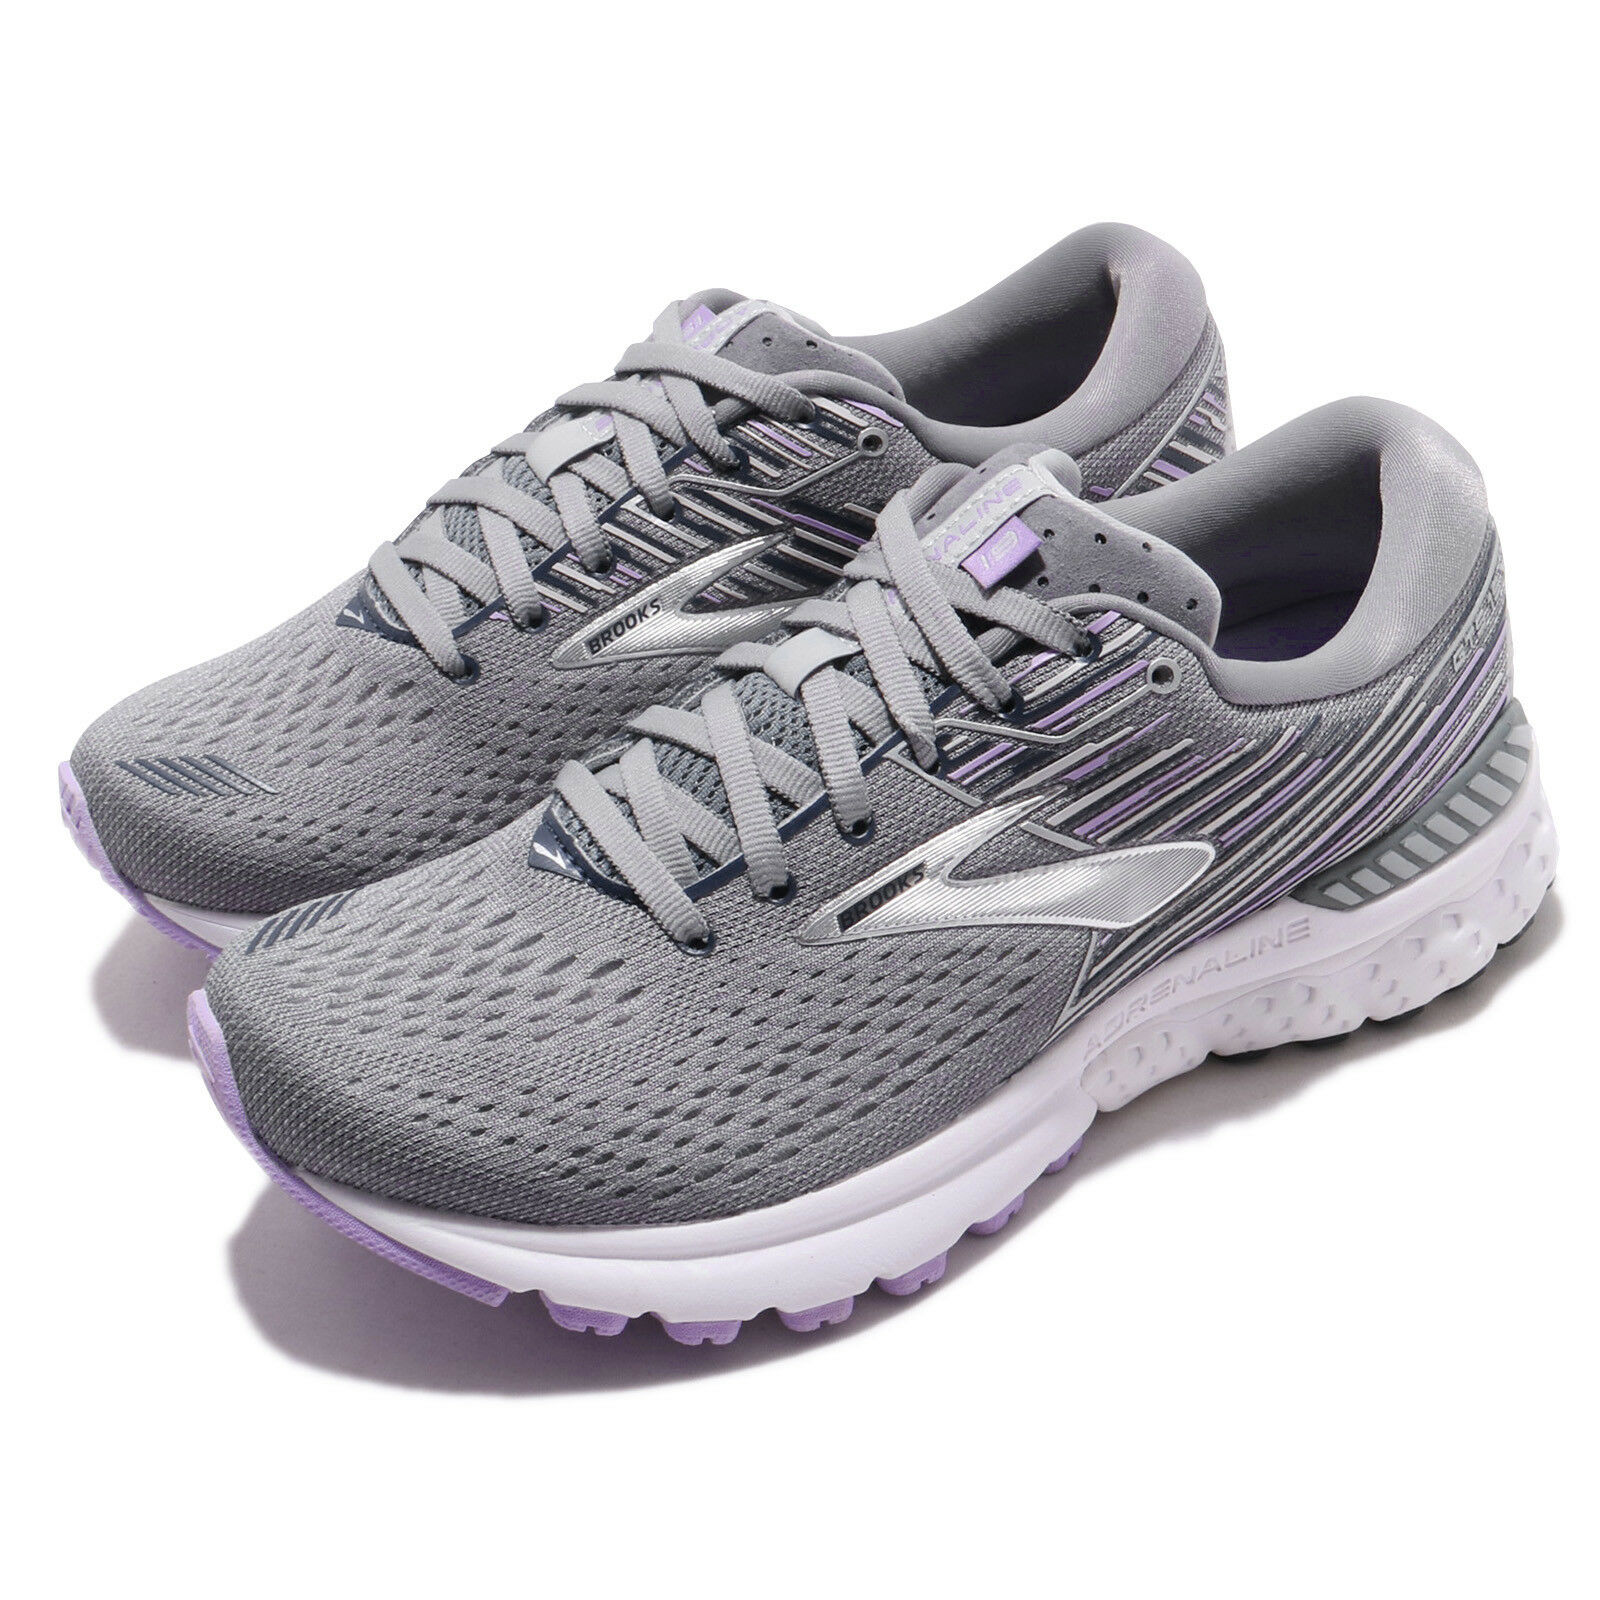 Brooks Adrenaline GTS 19 D Wide Grey Lavender Navy Women Running shoes 120284 1D